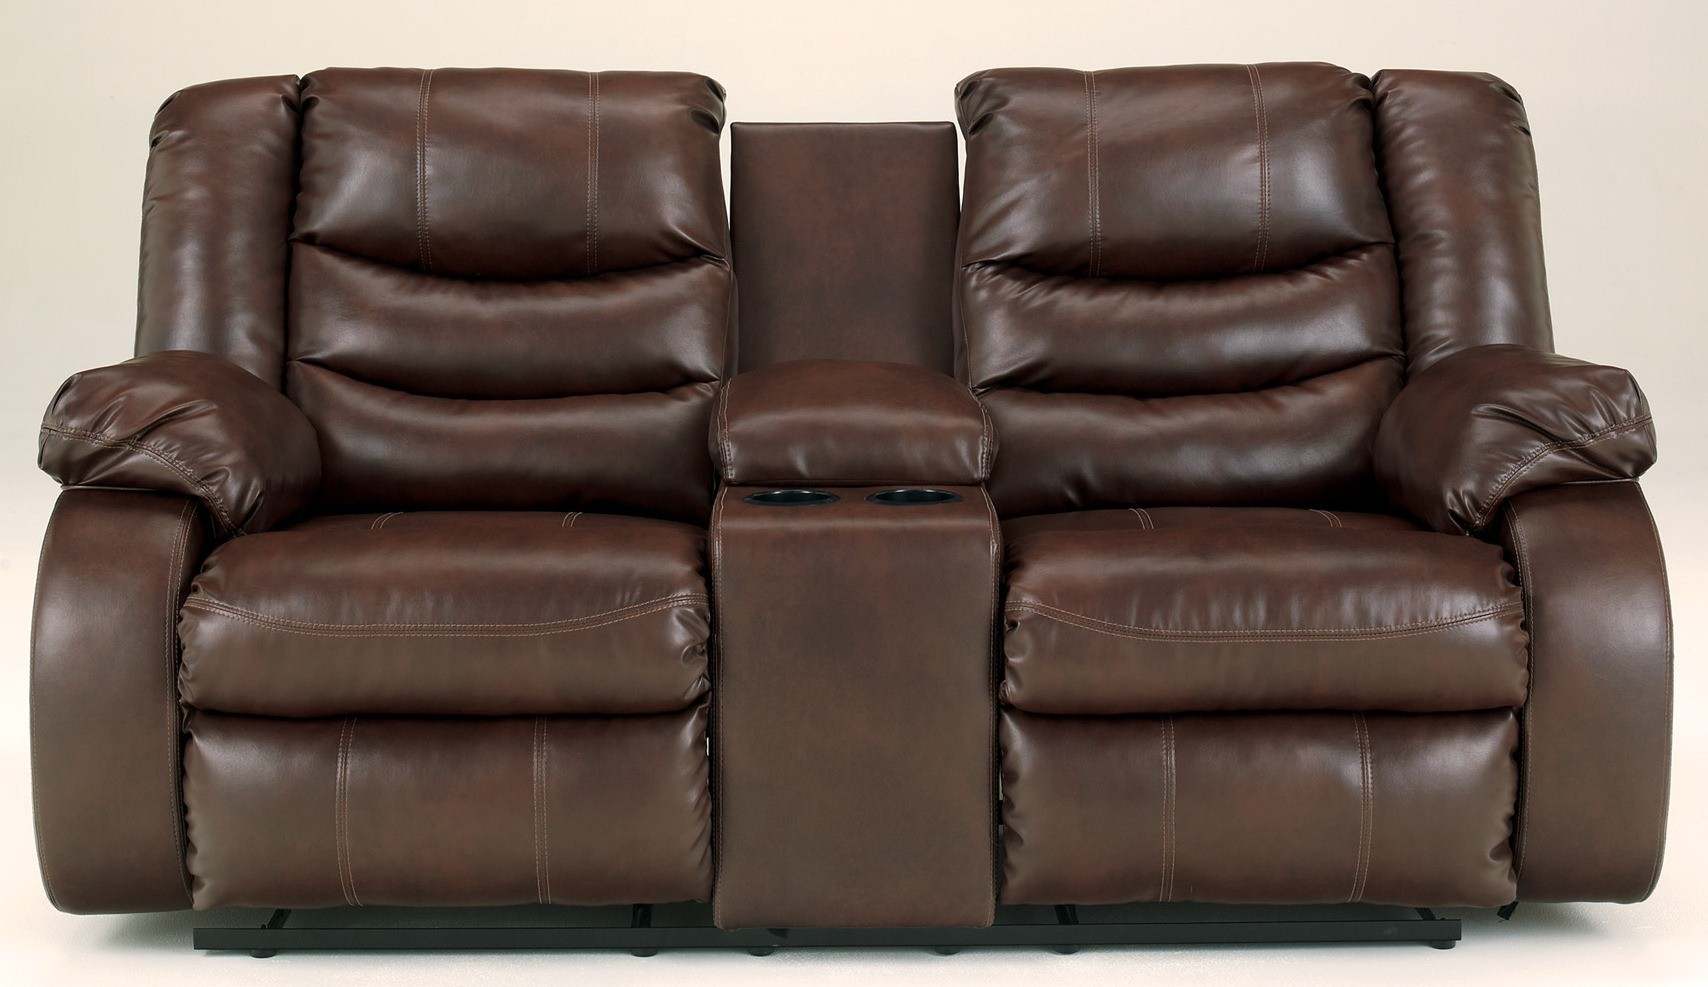 Linebacker Durablend Espresso Reclining Loveseat With